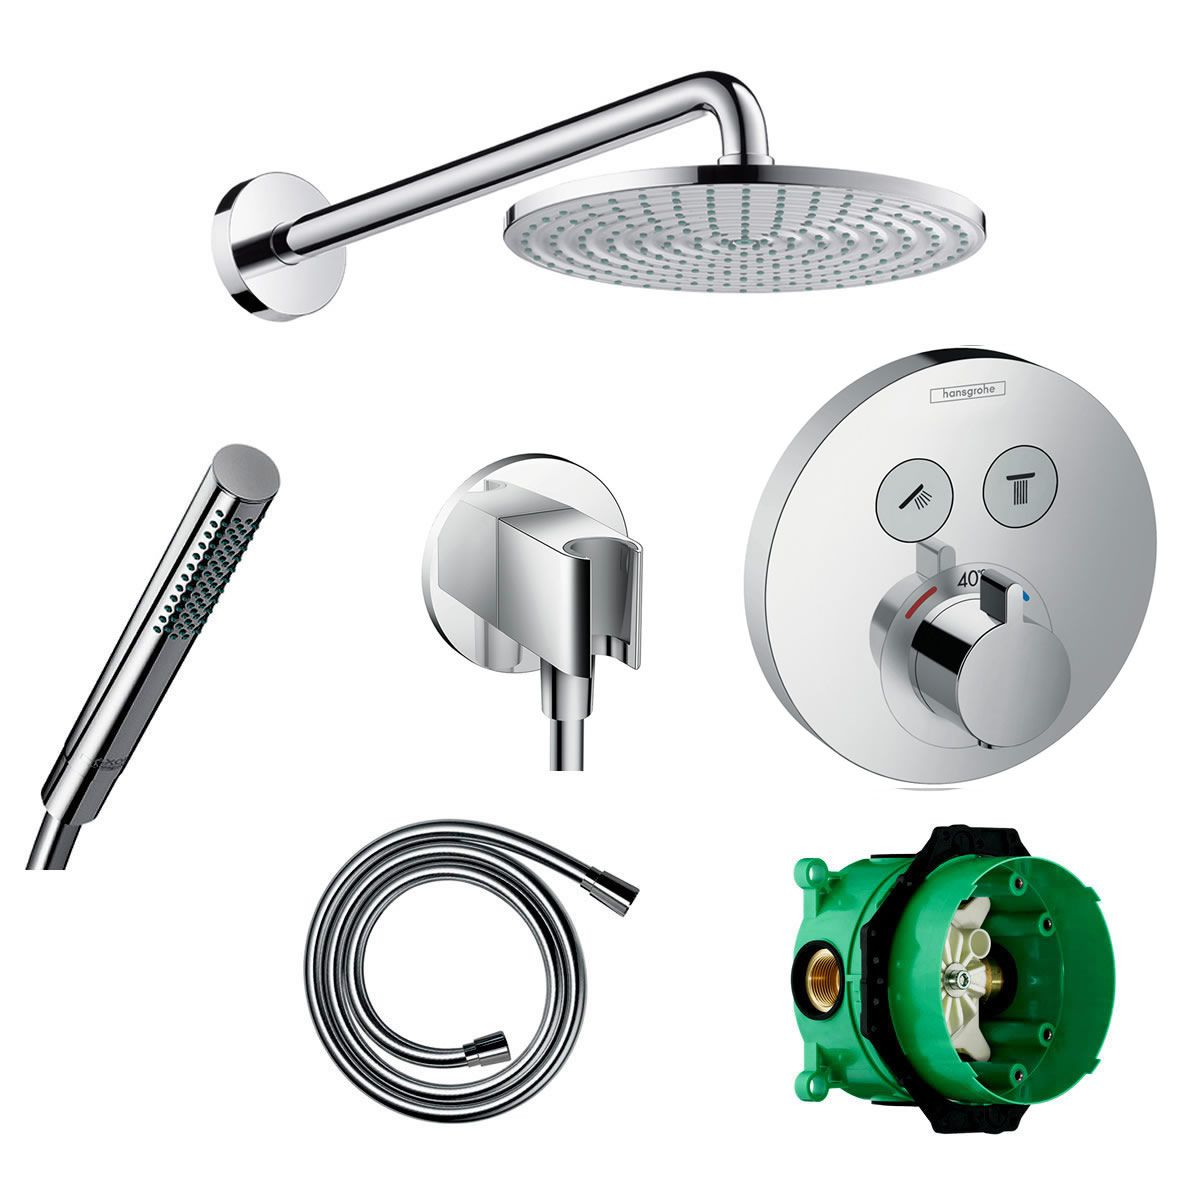 Hansgrohe Round Select Valve with Raindance 240 Overhead Shower and Axor Hand shower - 88101013